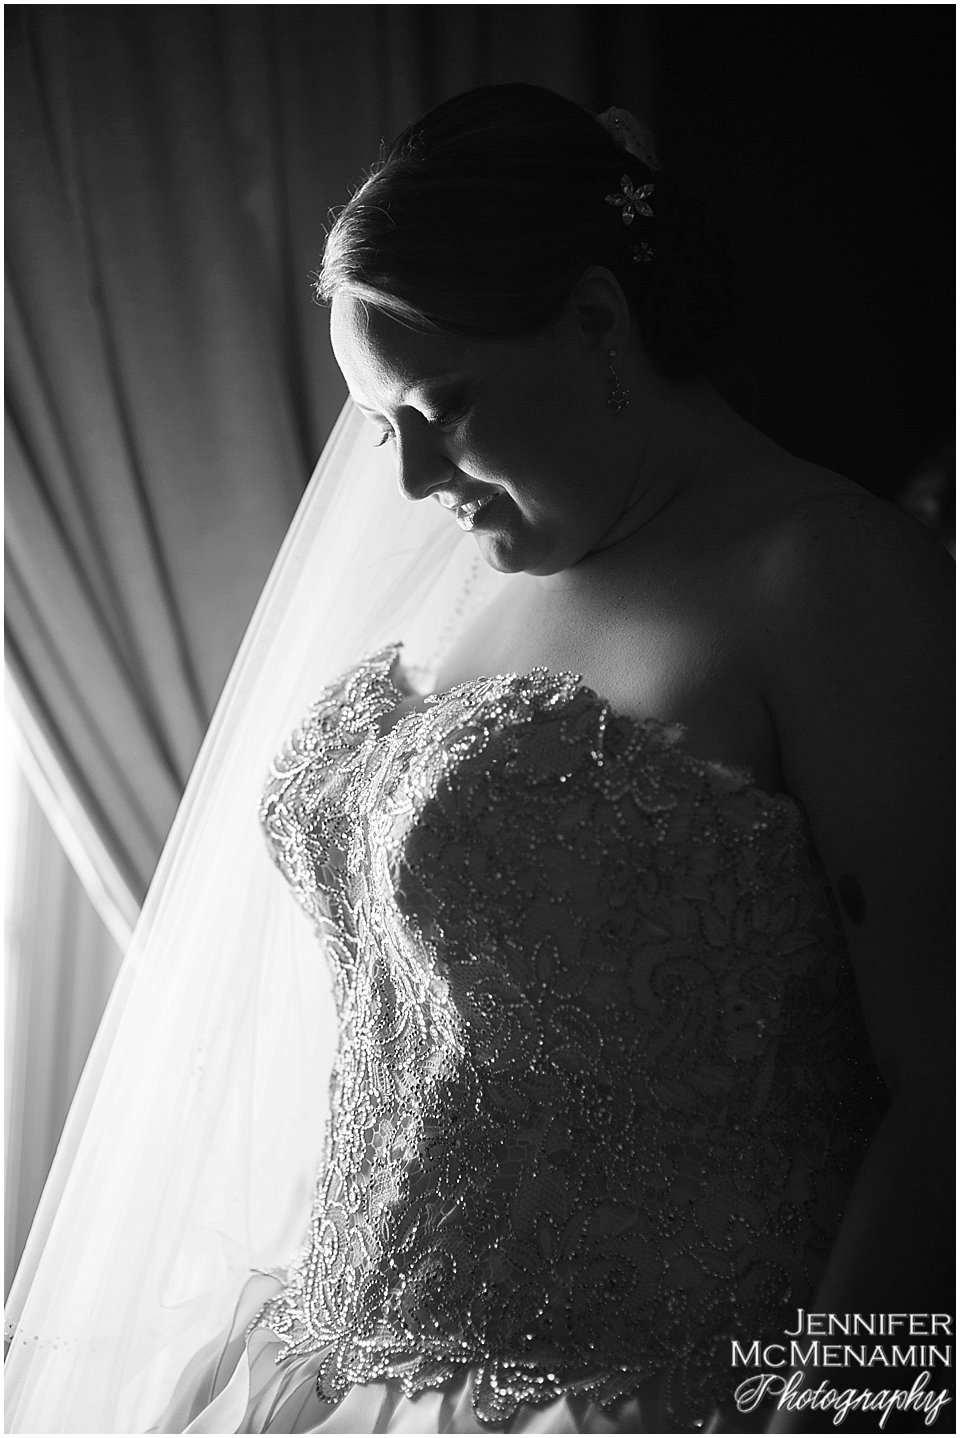 002-KinzlerShaull_00375bw_Jennifer-McMenamin-Photography-Peabody-Library-wedding